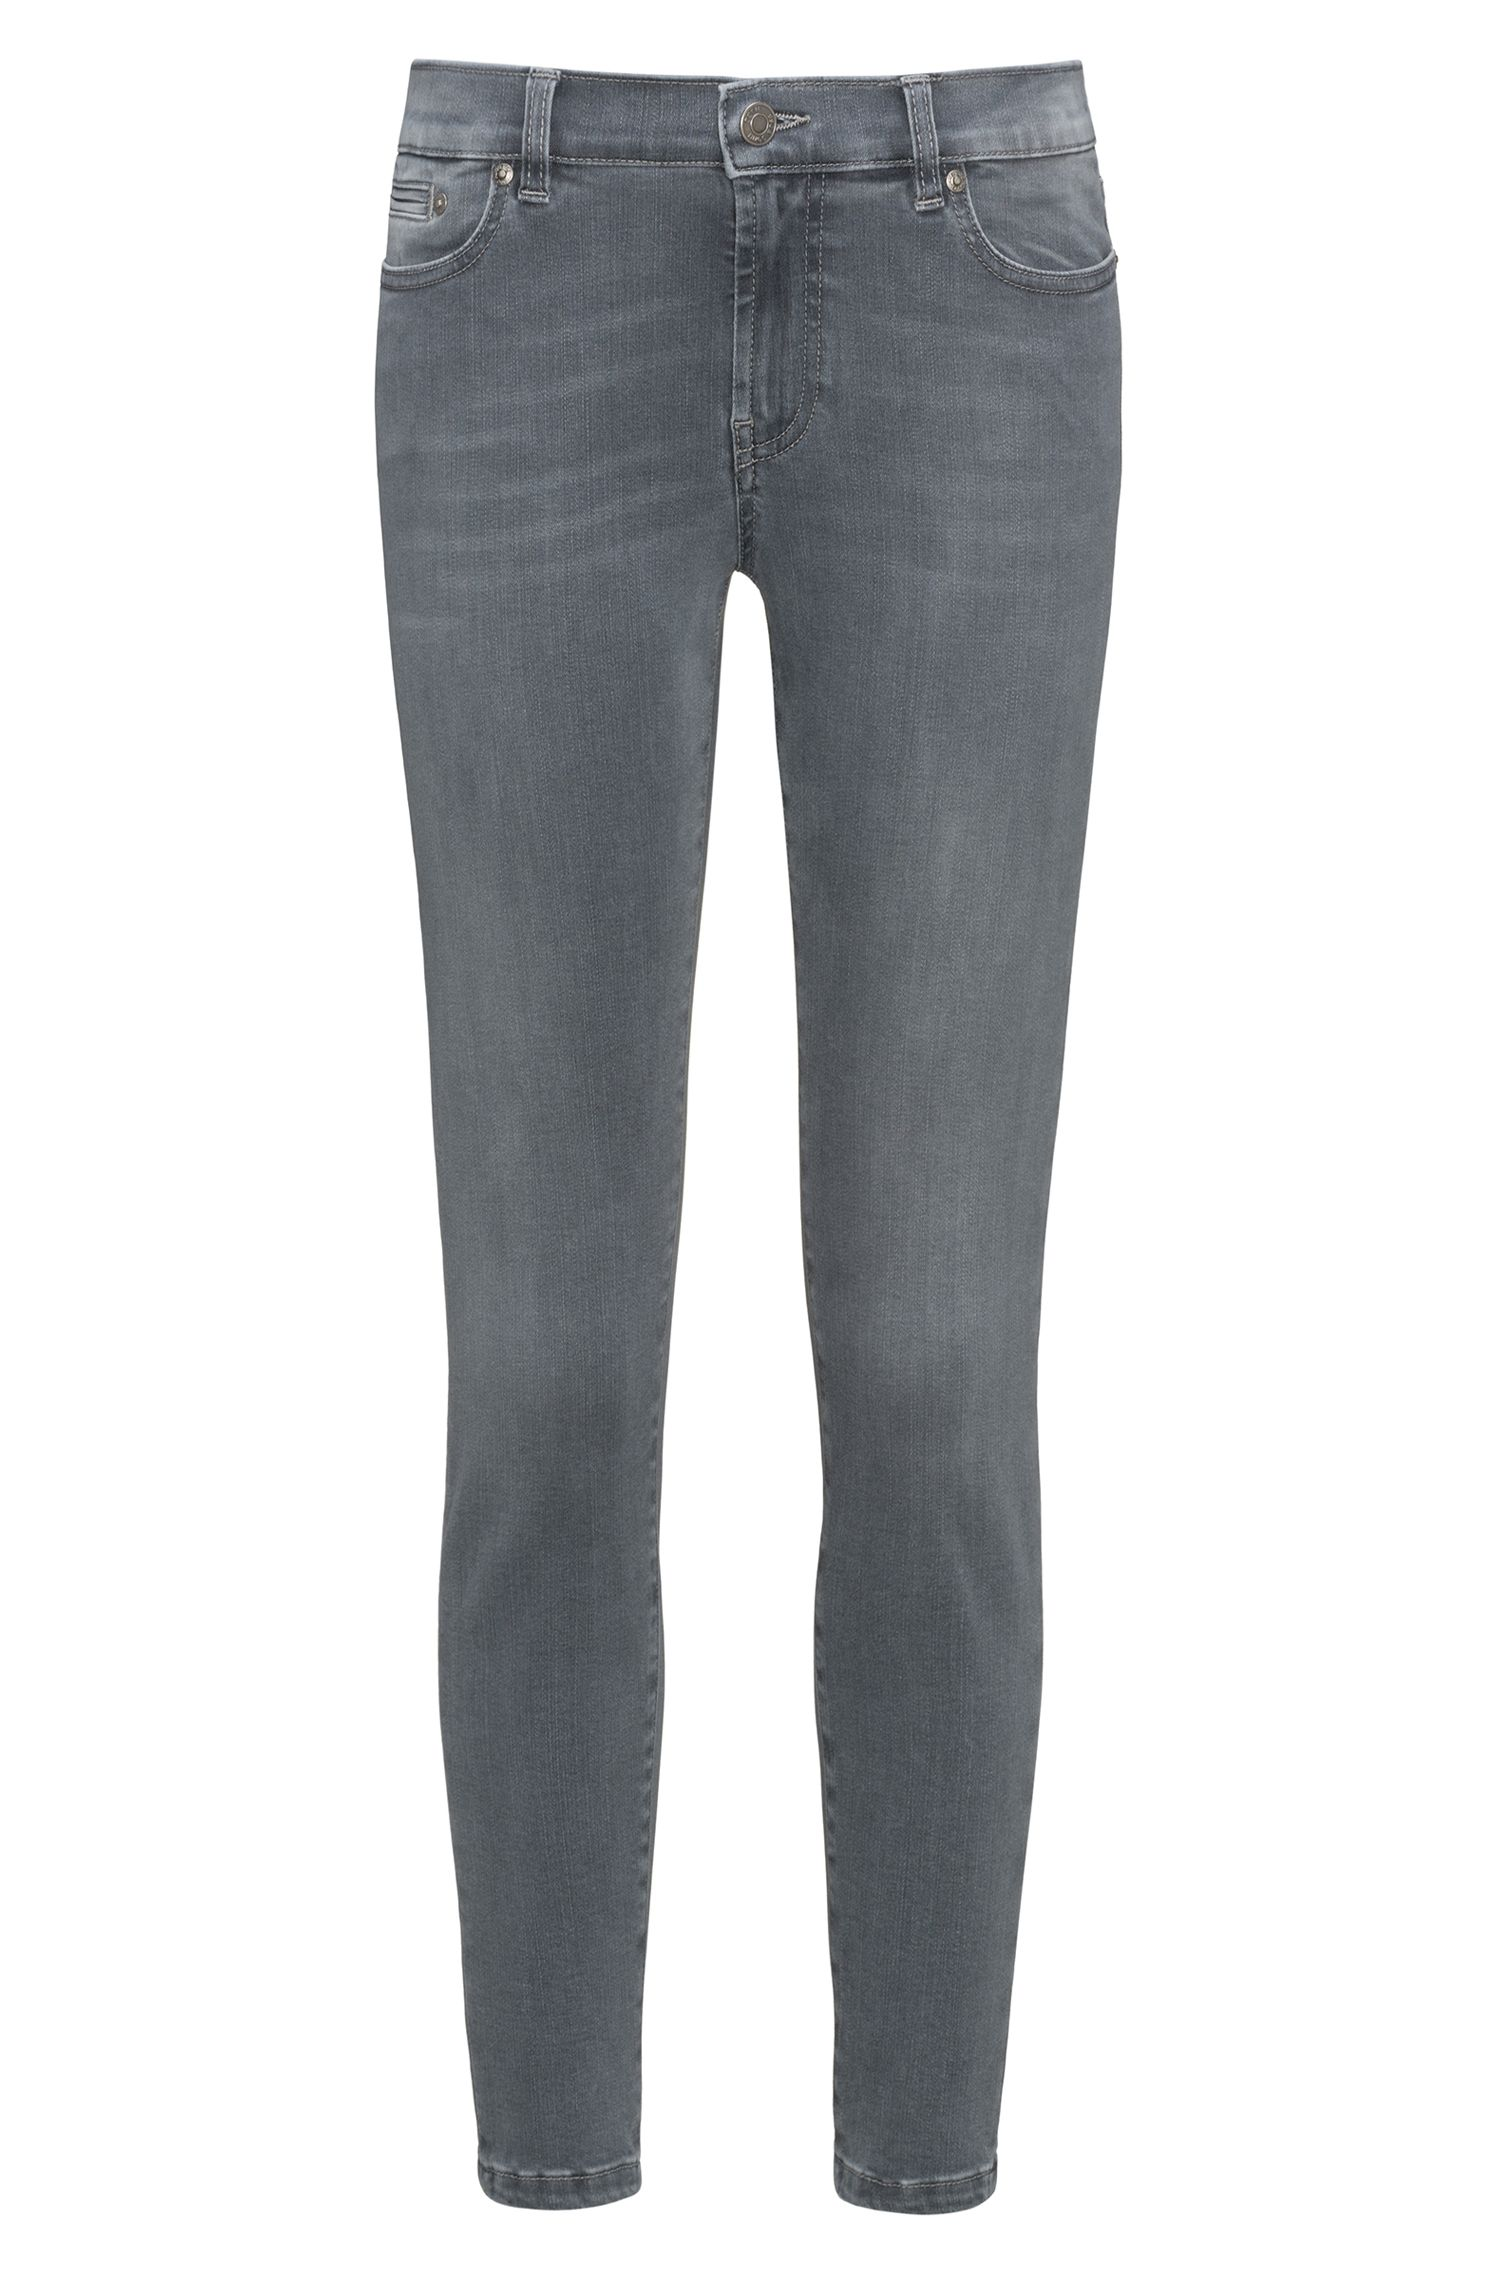 Skinny-fit jeans in super-stretch grey denim